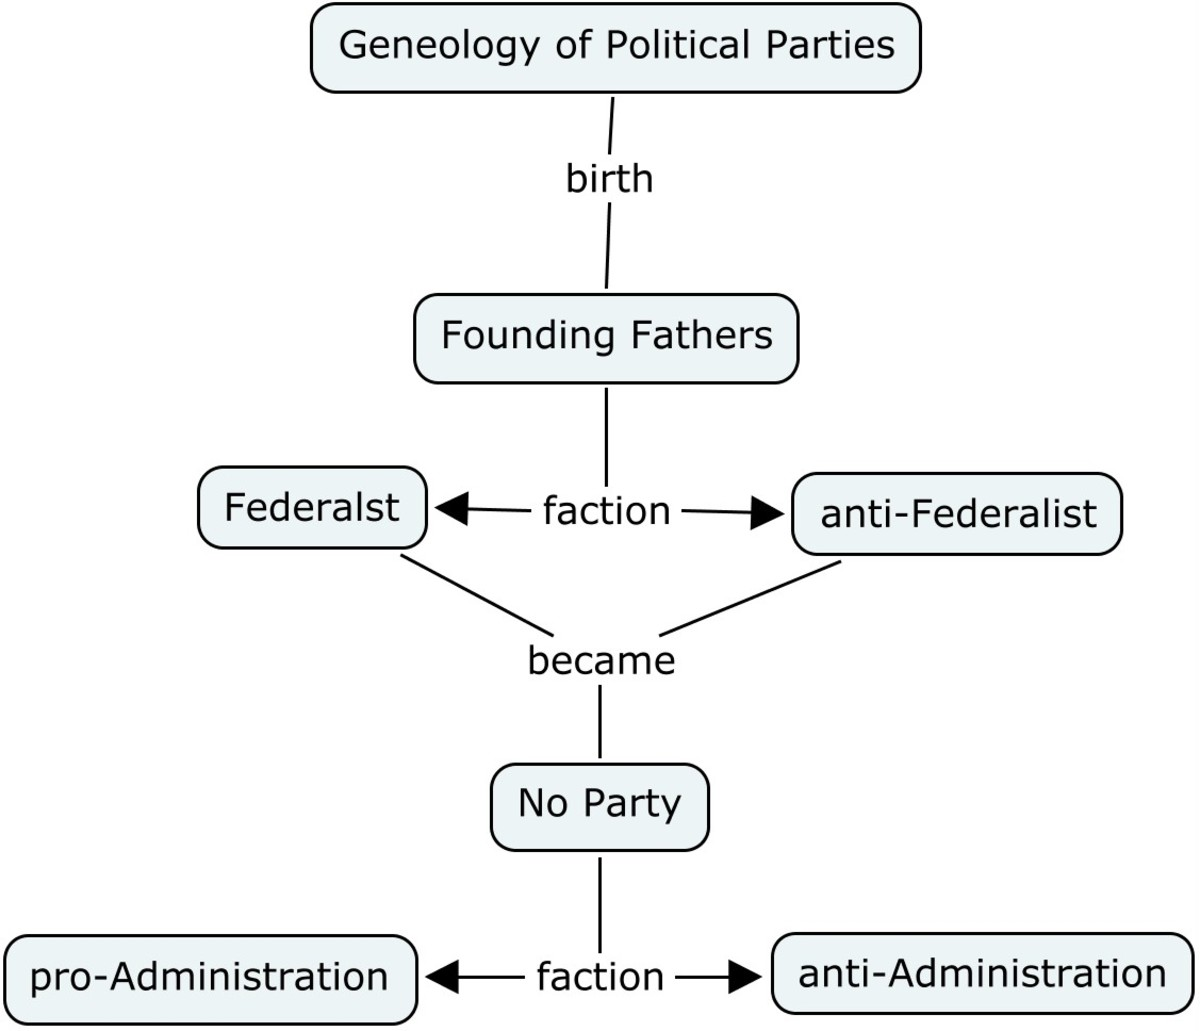 THE EMBRYO OF POLITICAL PARTIES